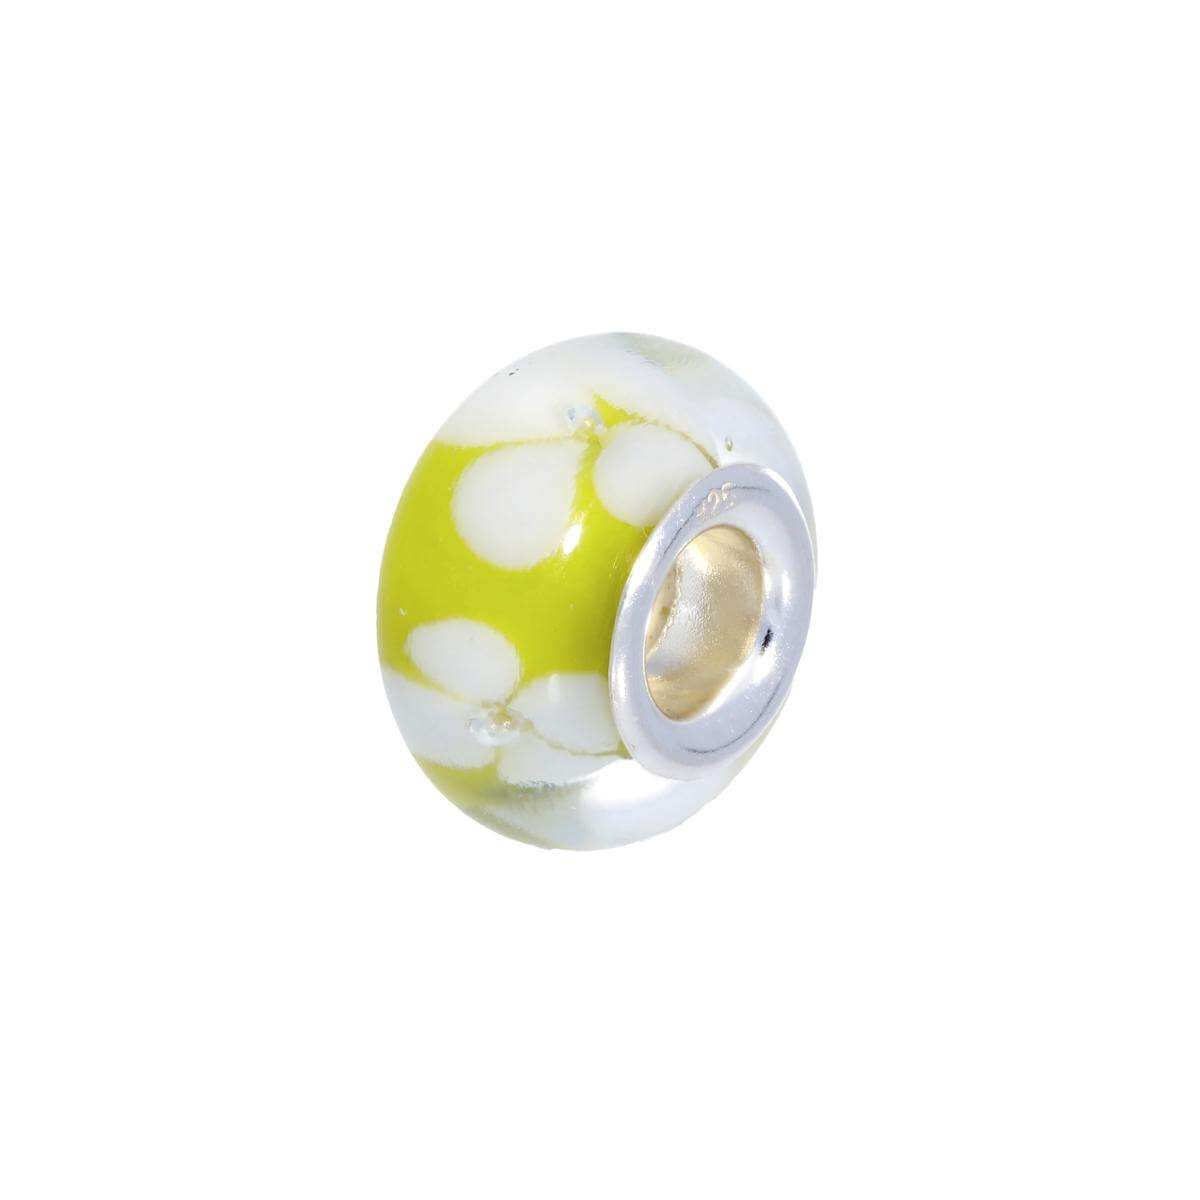 Sterling Silver & Yellow Glass Bead Charm with White Flowers